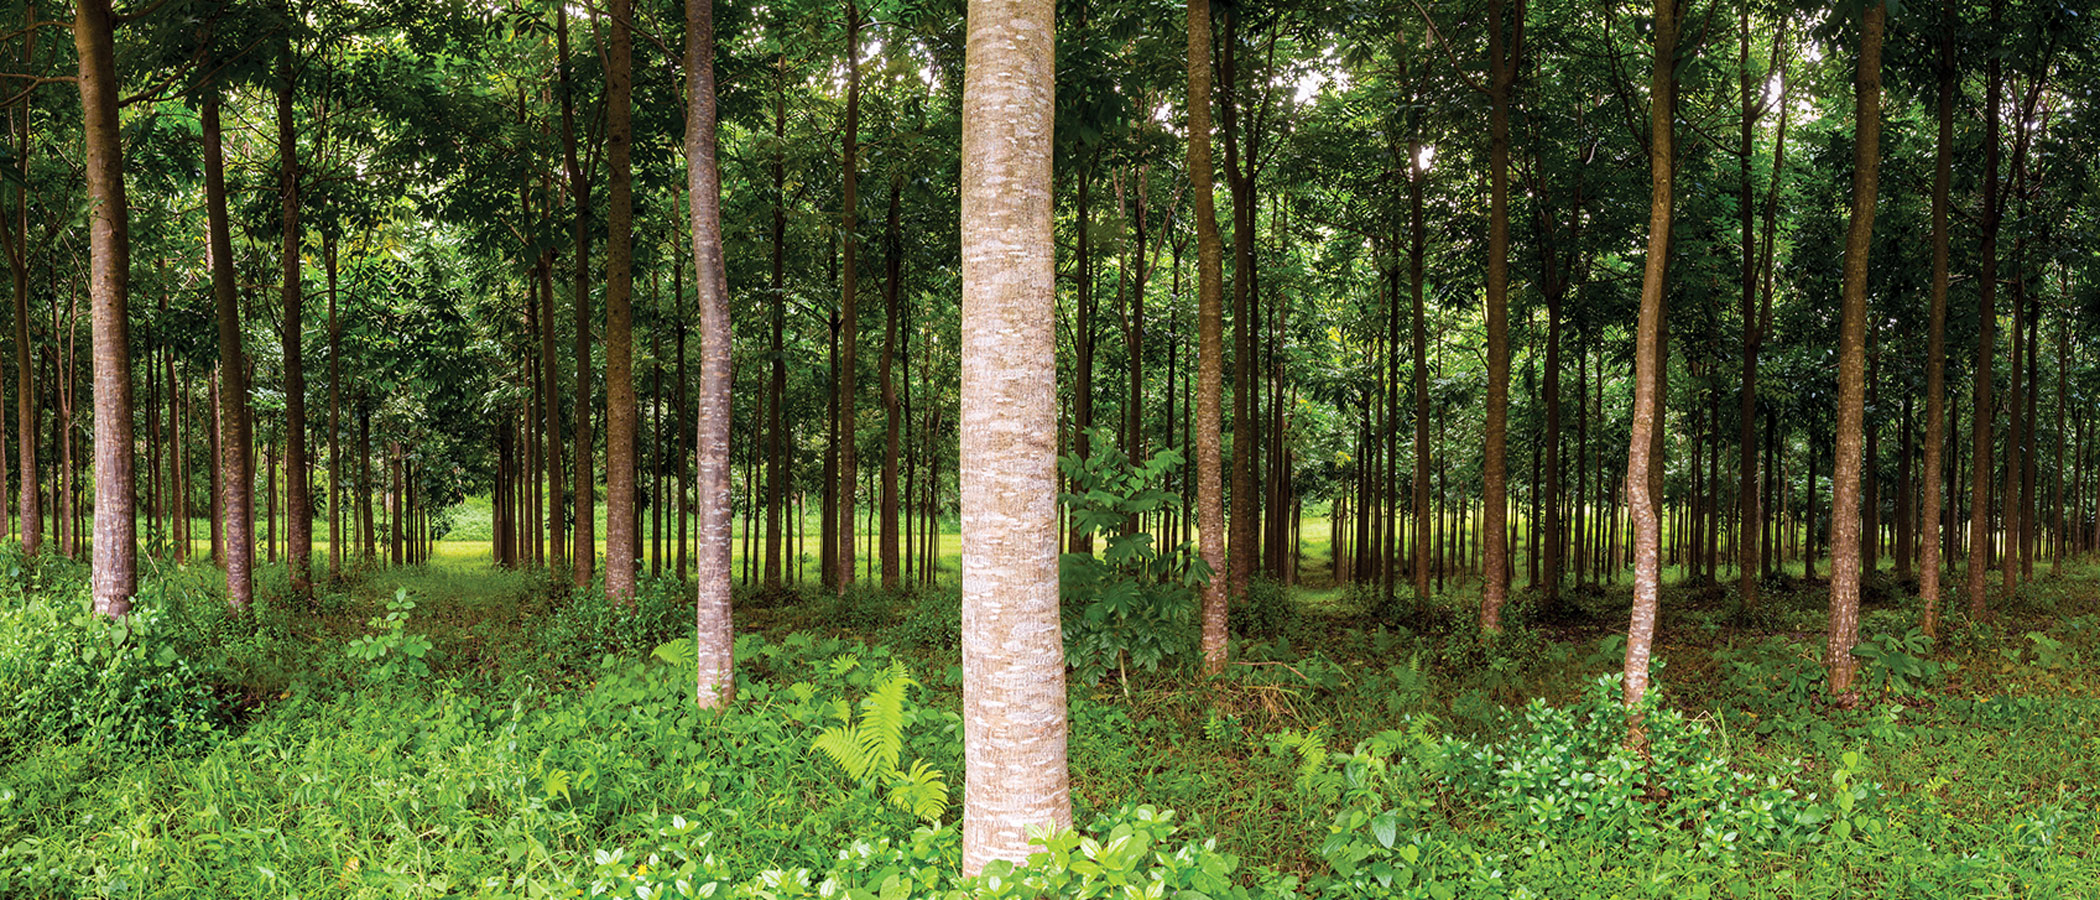 Afforestation – Protecting Our Forest and Future